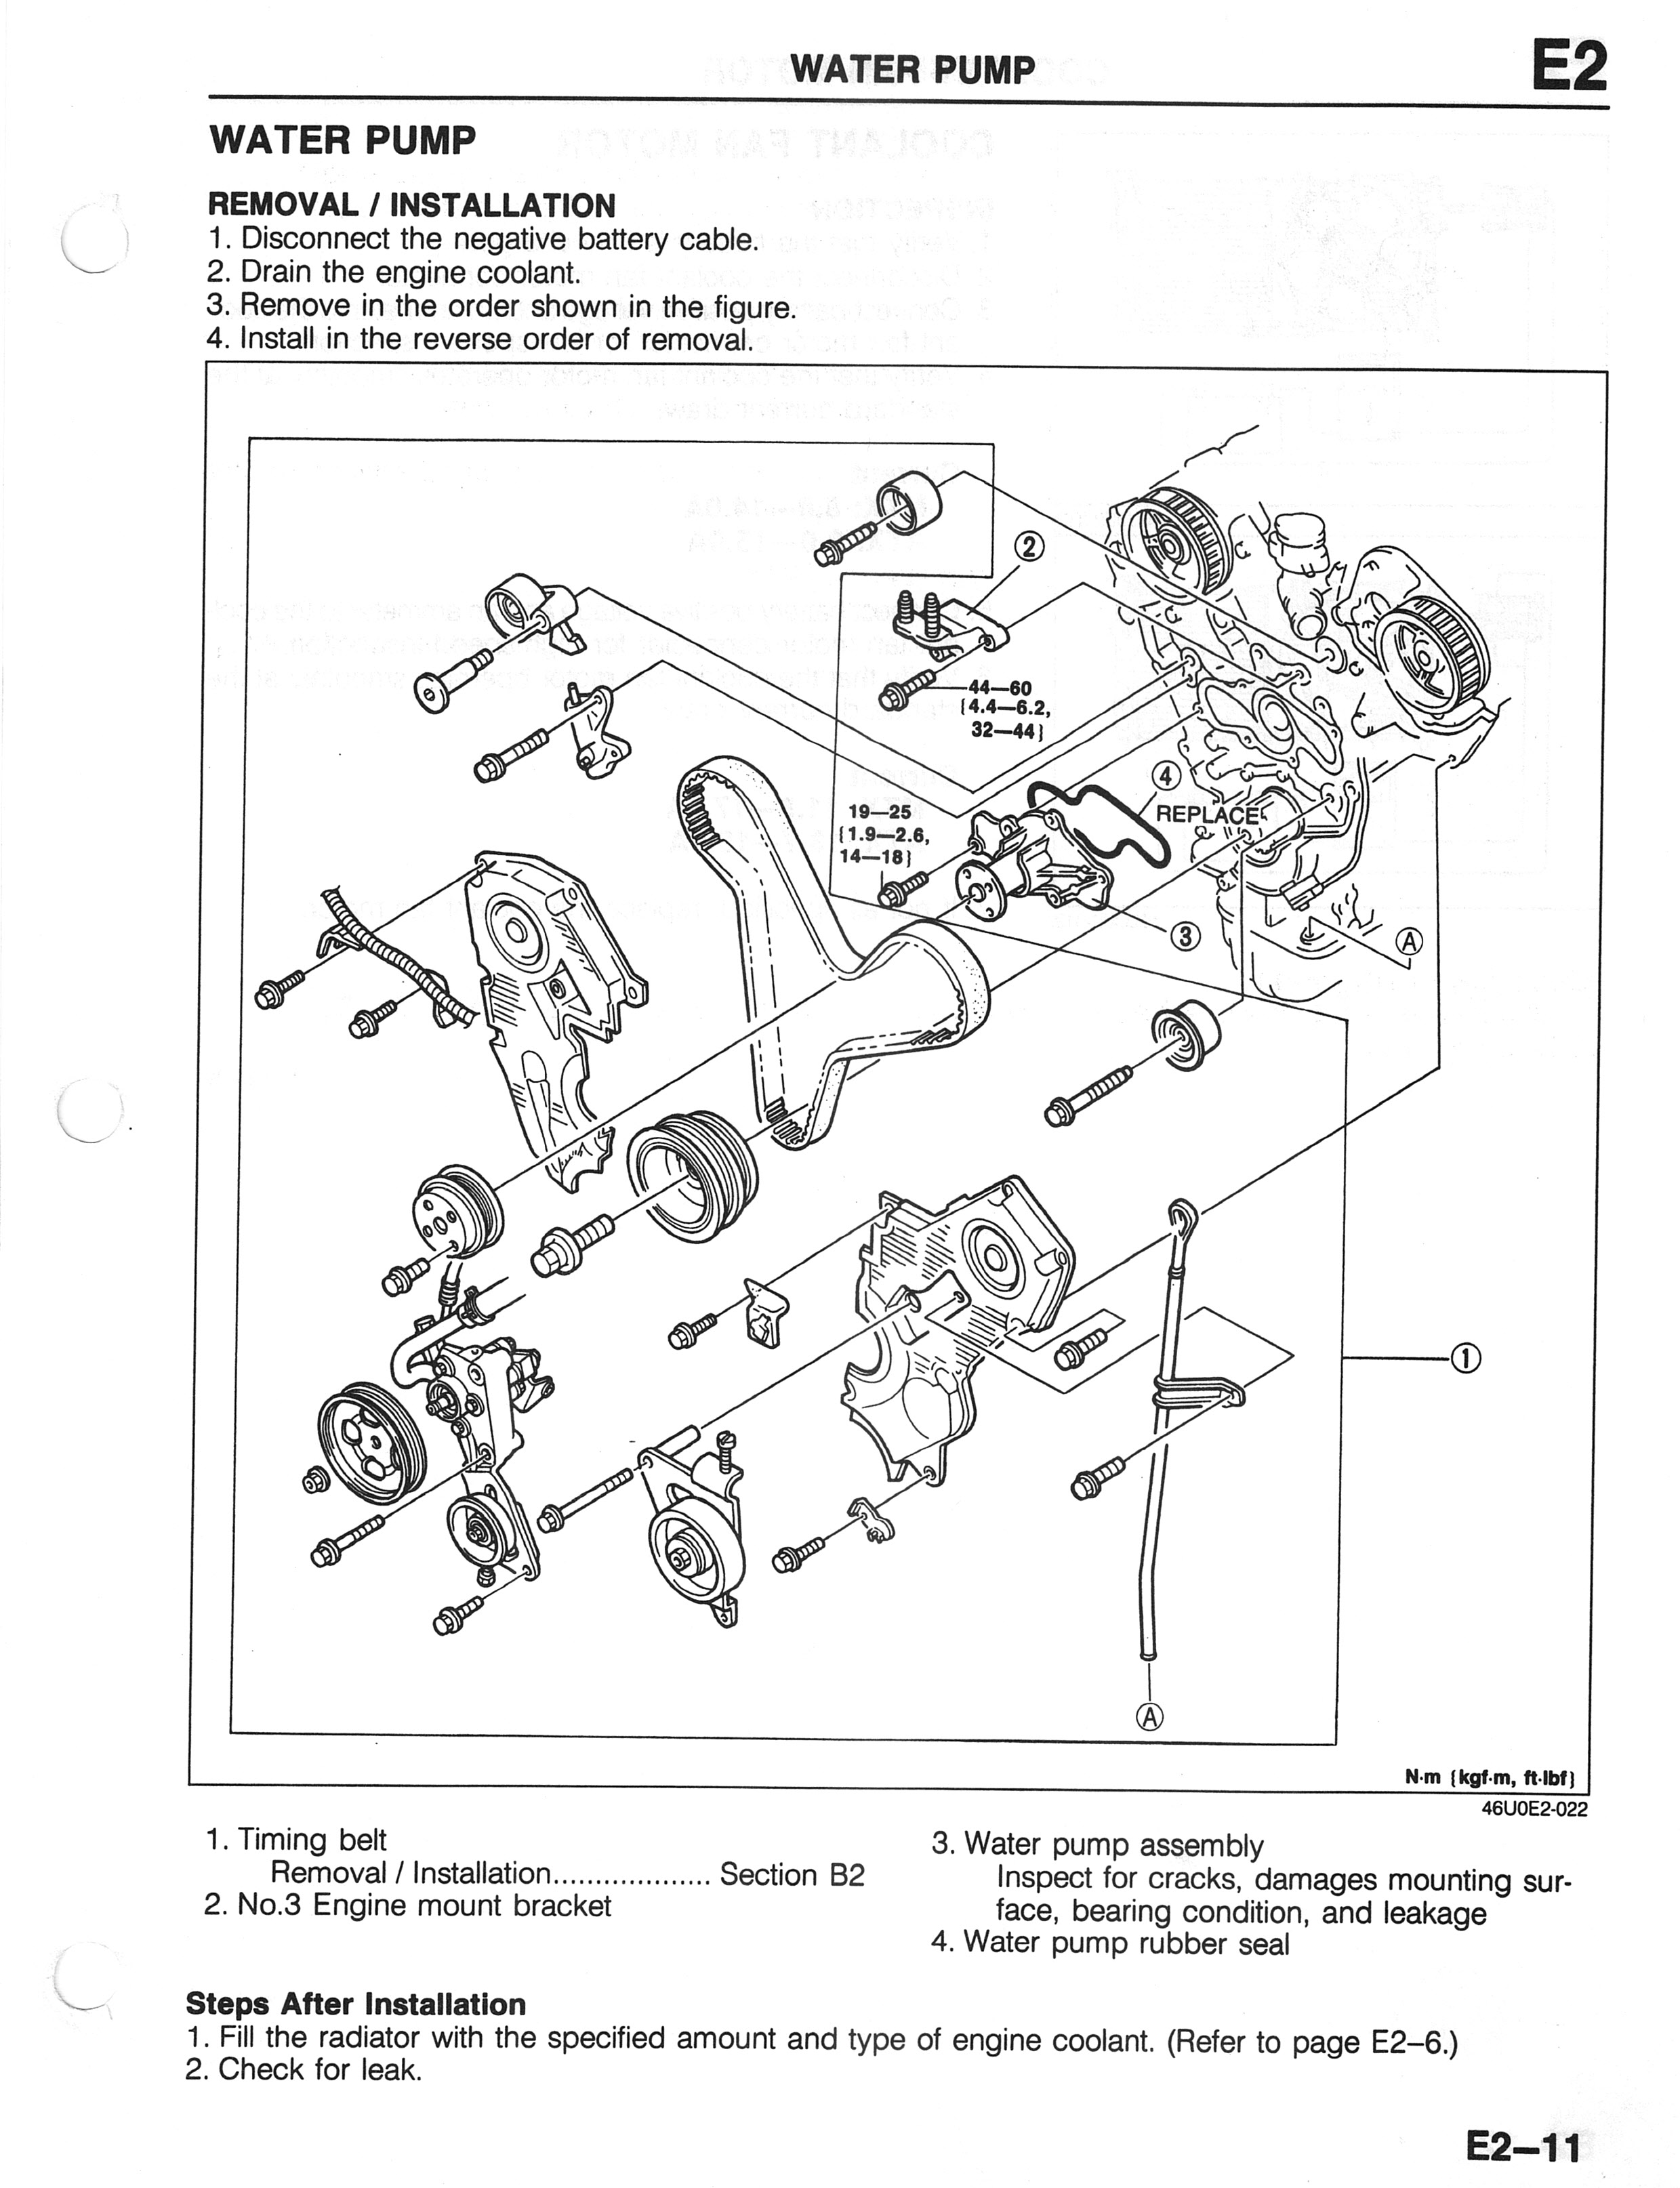 Chevy Tahoe Parts Diagram Wirning Diagrams. Chevy. Auto